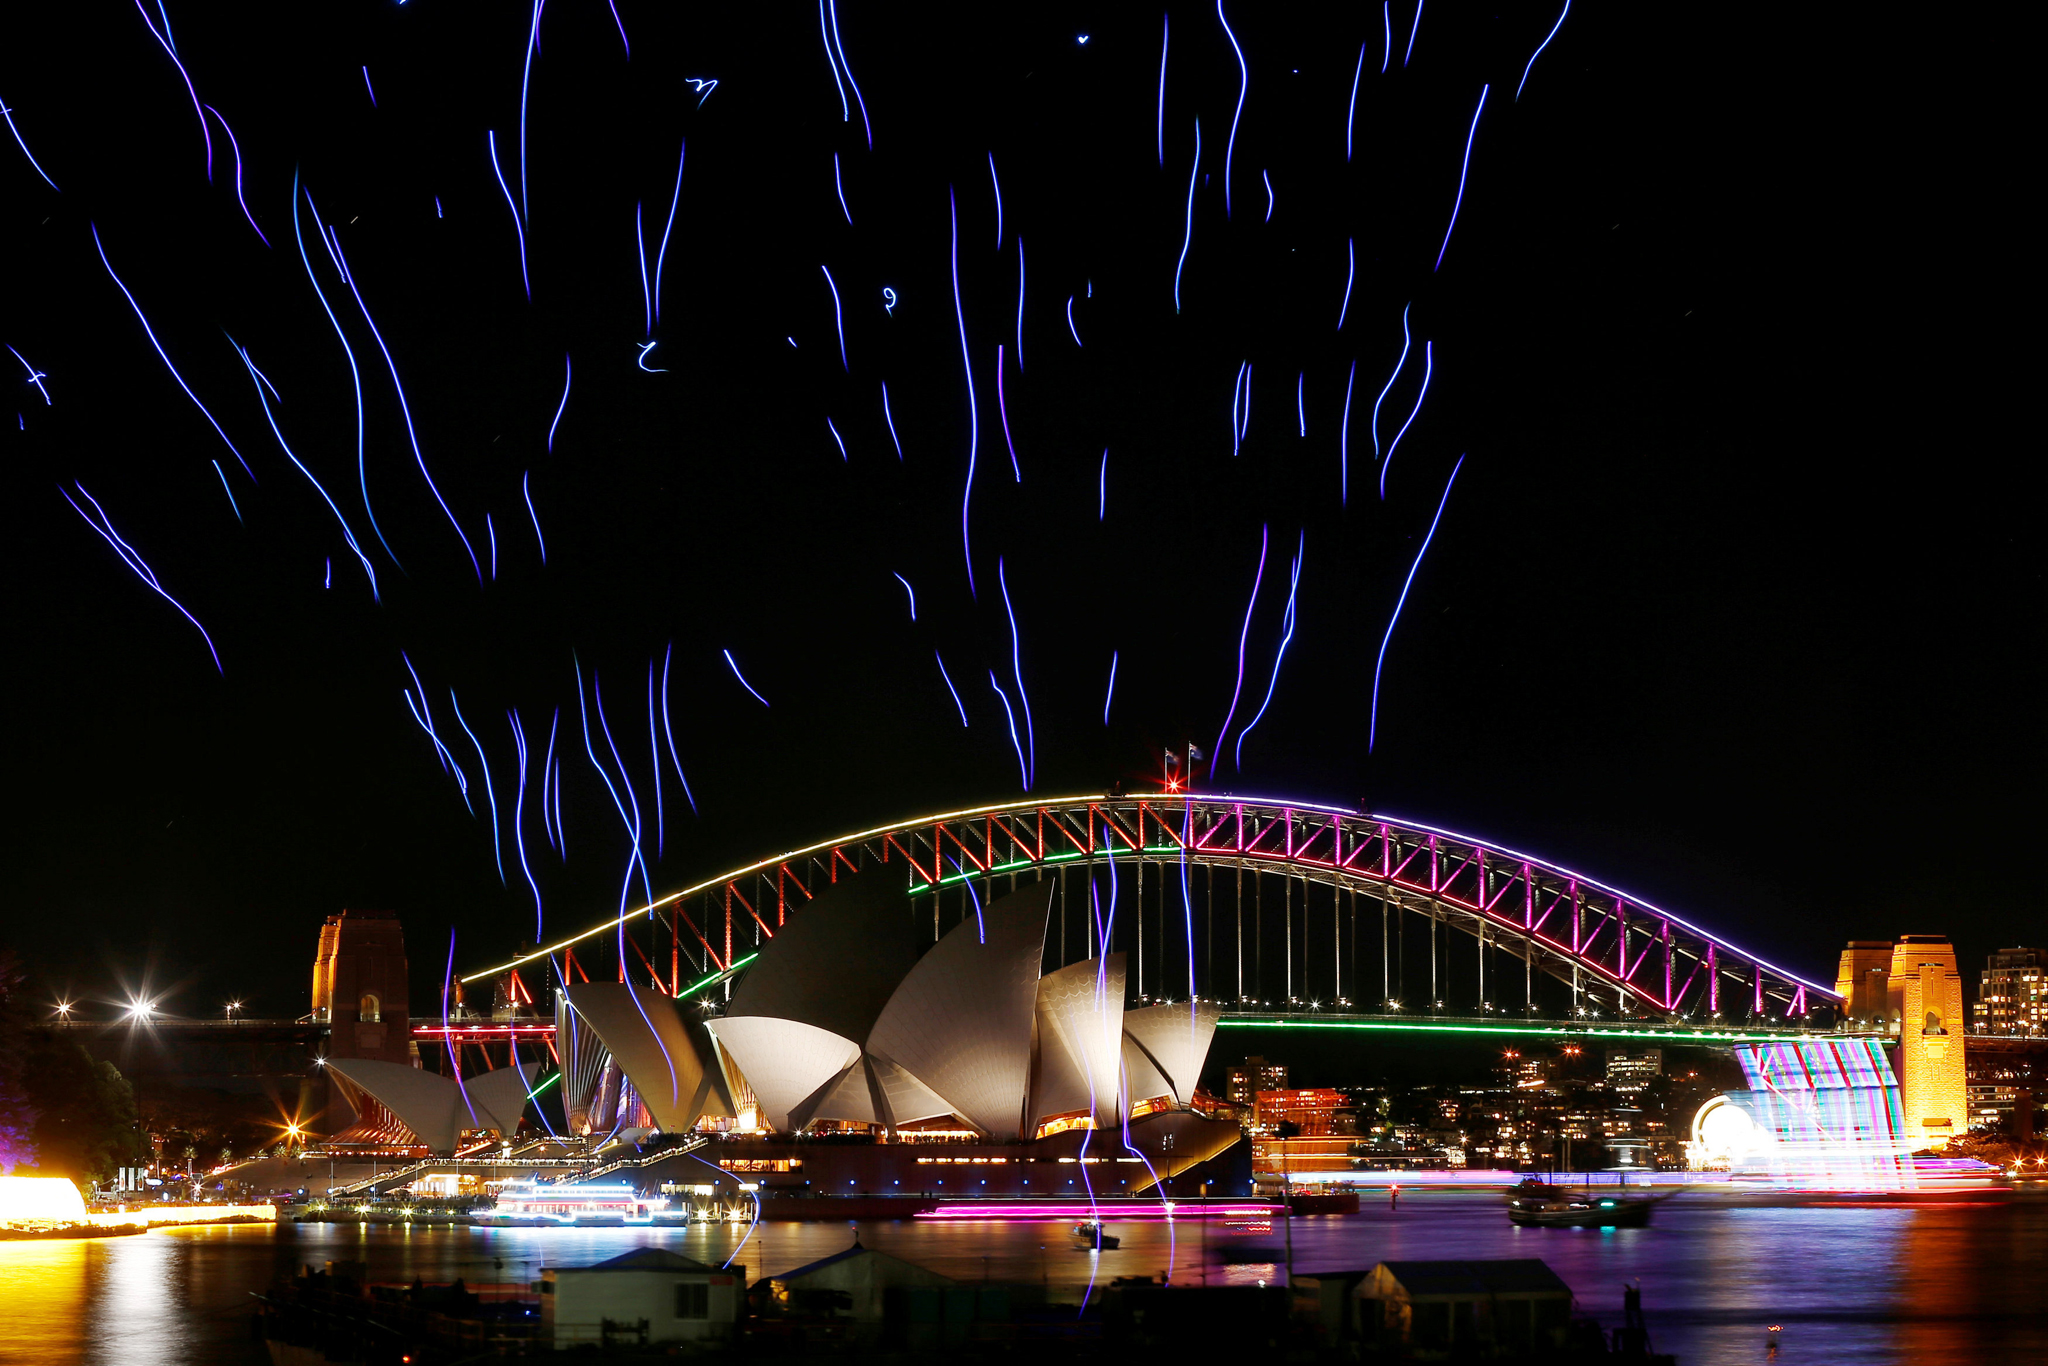 An aerial performance featuring 100 illuminated drones lift off from a barge on Sydney Harbour in front the Sydney Harbour Bridge and Opera House during the Vivid Sydney light festival in Sydney, Australia, June 9, 2016. REUTERS/Jason Reed TPX IMAGES OF THE DAY